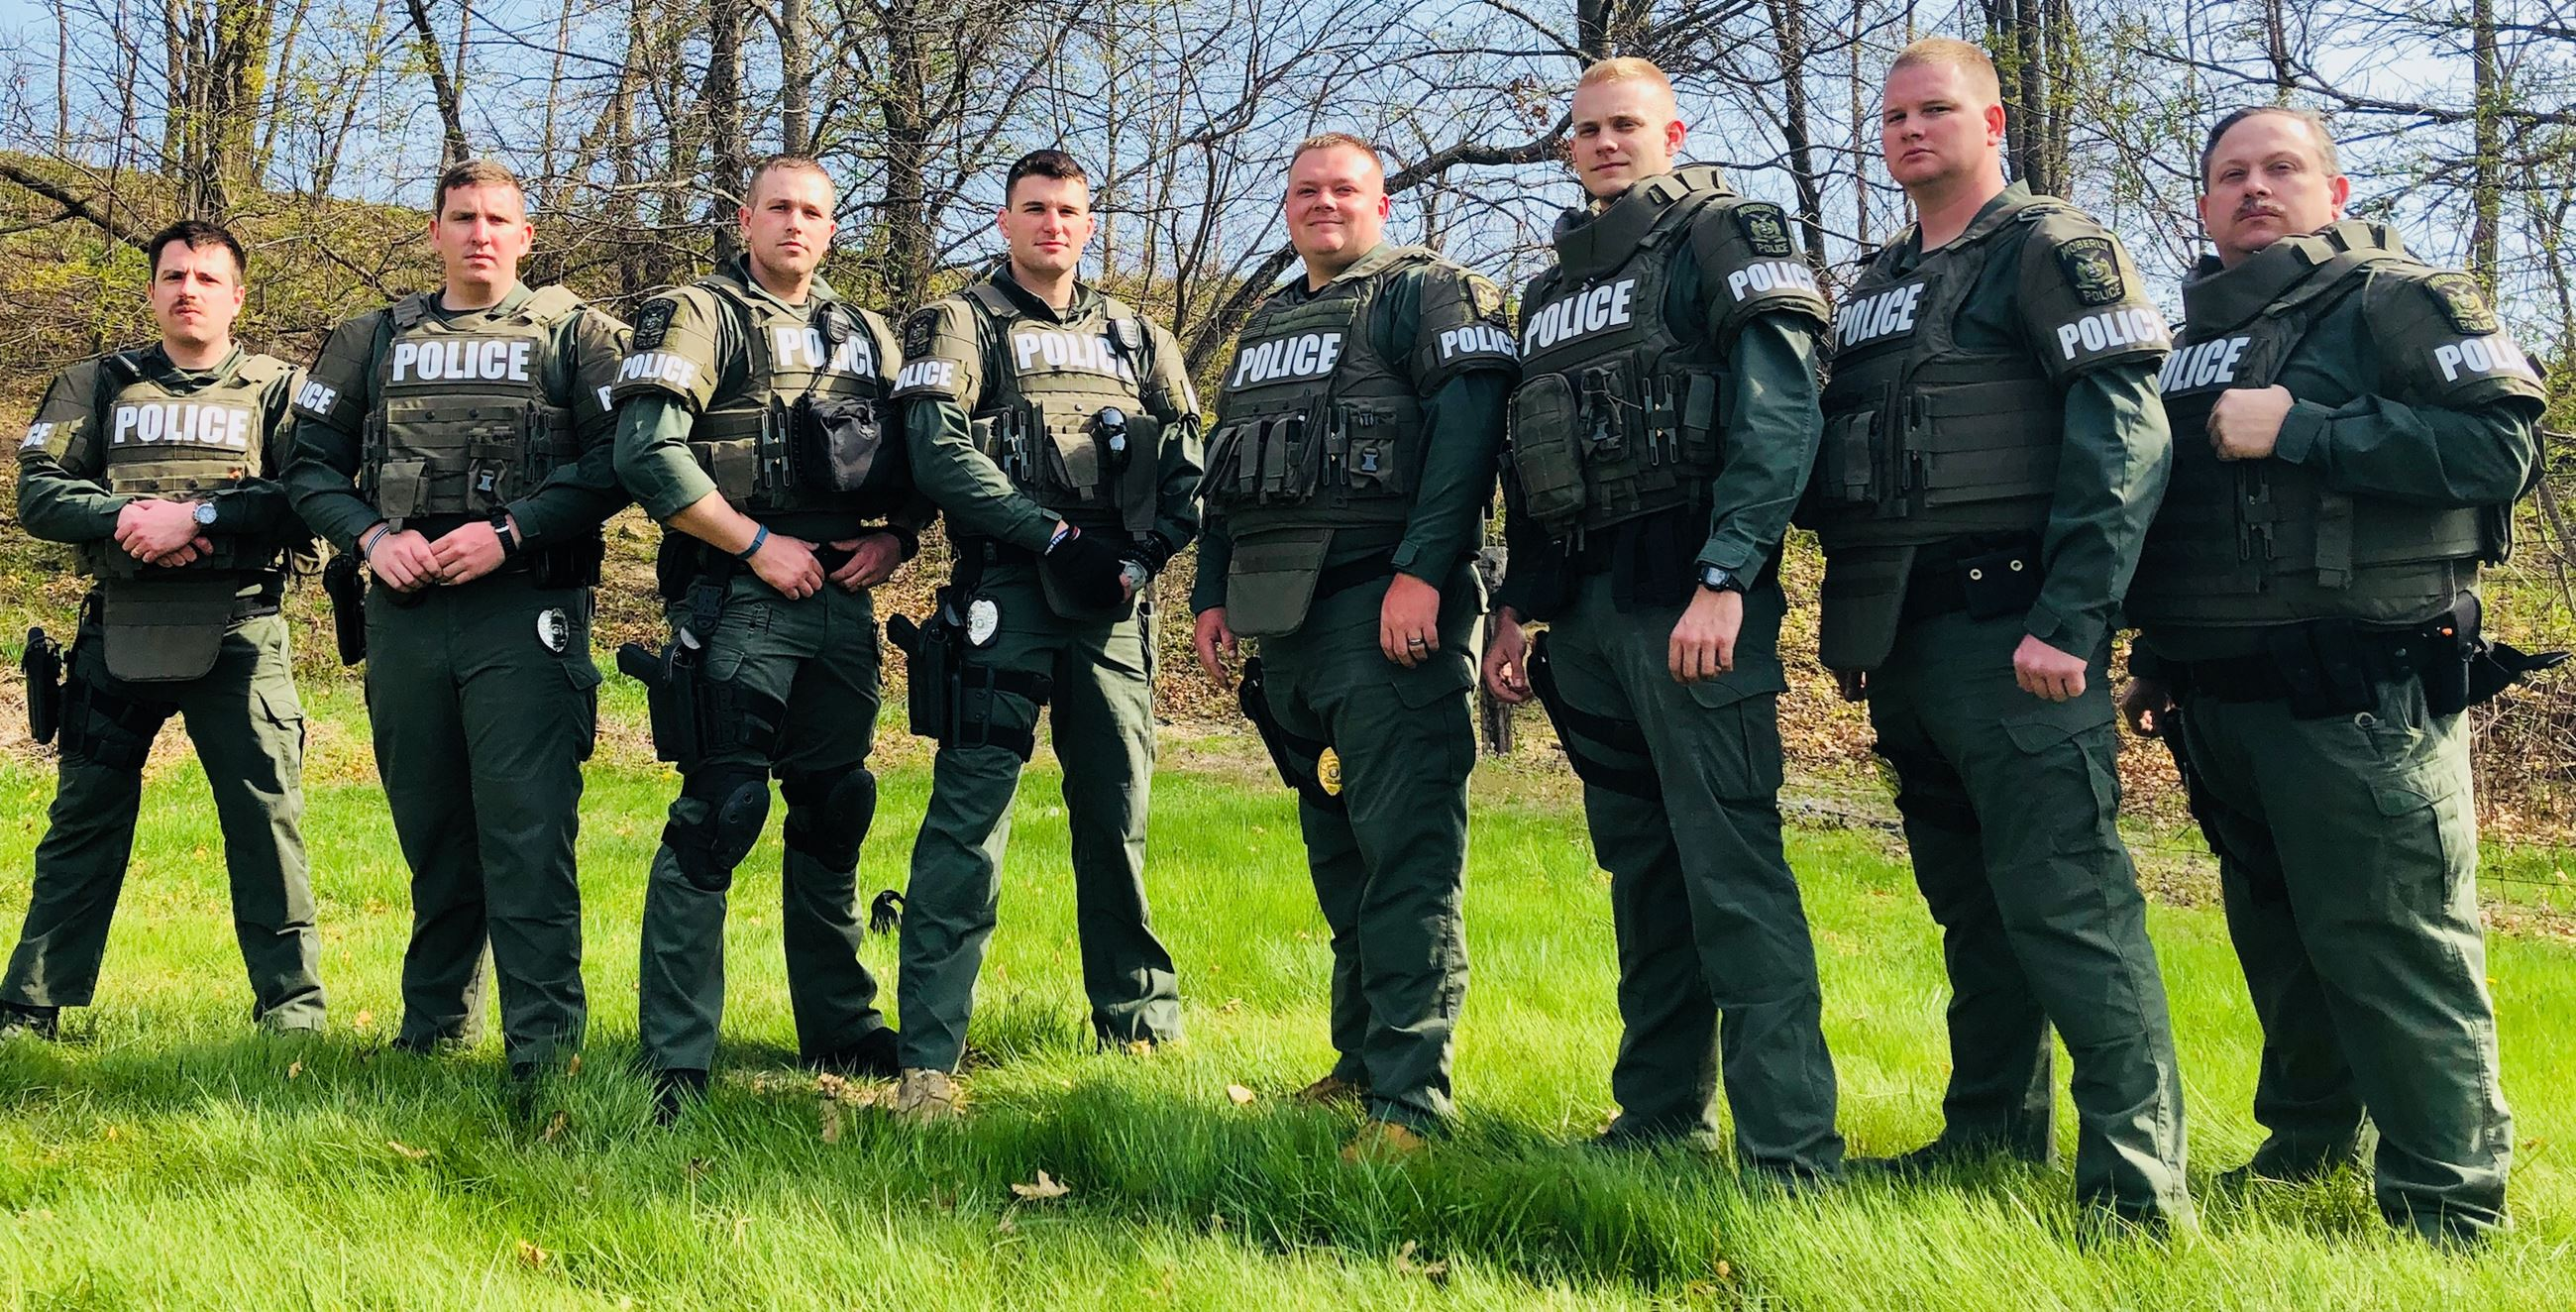 Image of Moberly Police SWAT Officers